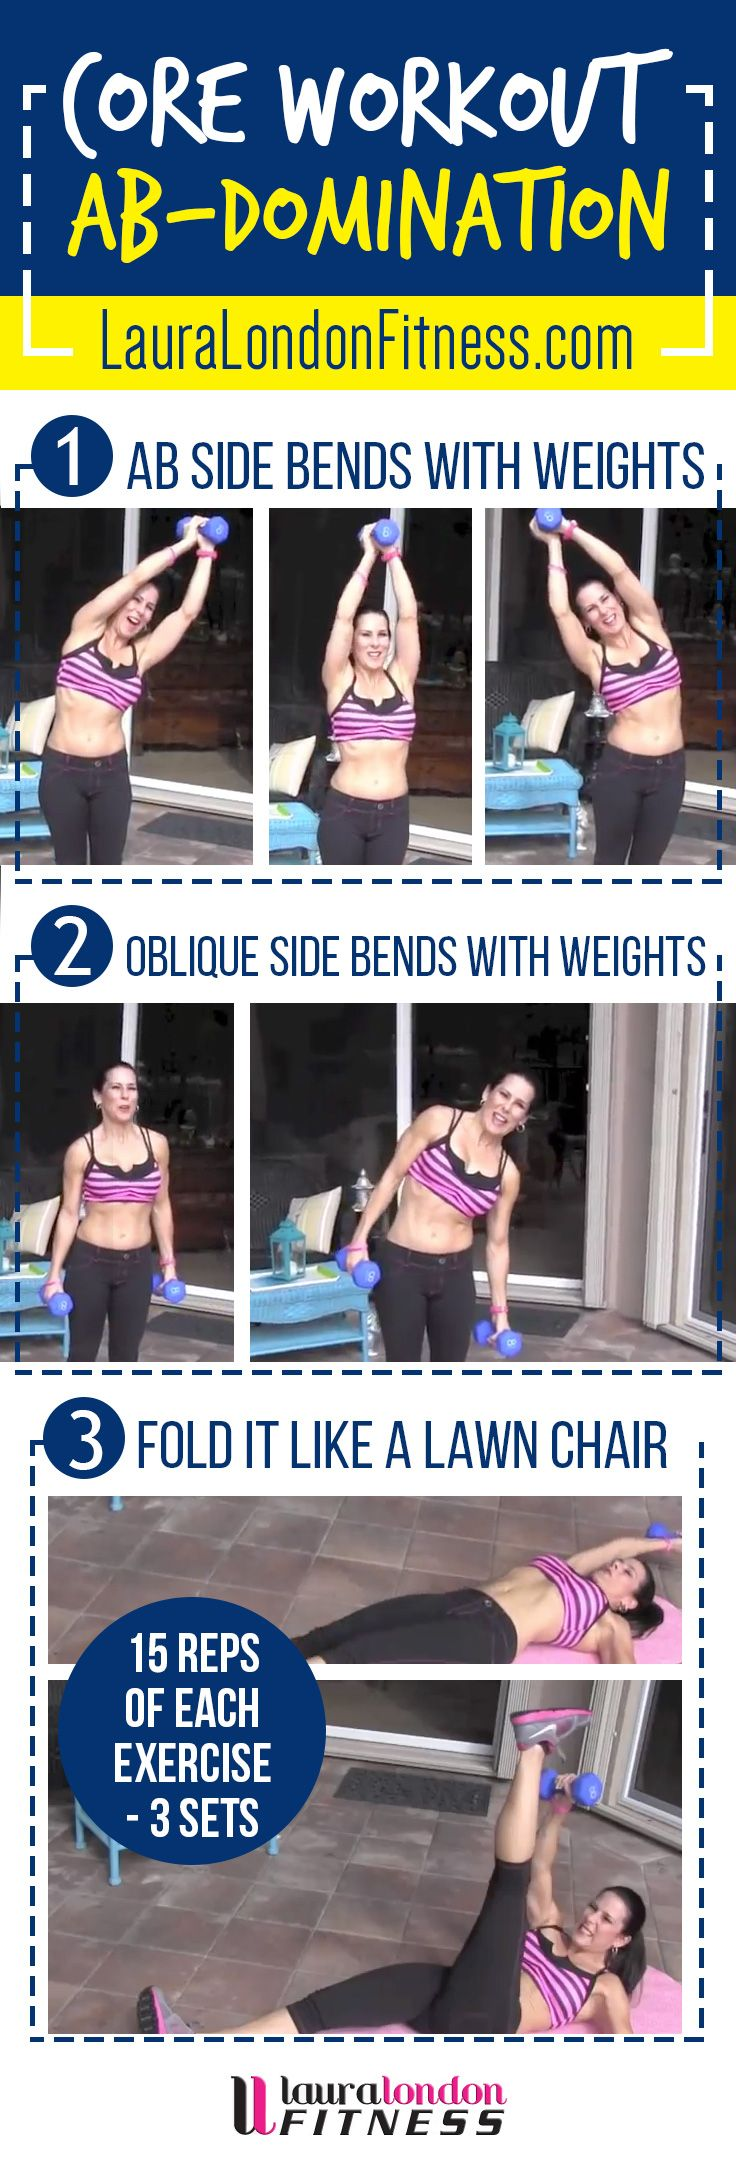 AB DOMINATION with Laura London. 3 of my favorite core building moves to whittle your waist. Full Video here: https://www.youtube.com/watch?v=TvsojUTn8vw #fitness #homeworkouts #lauralondonfitness